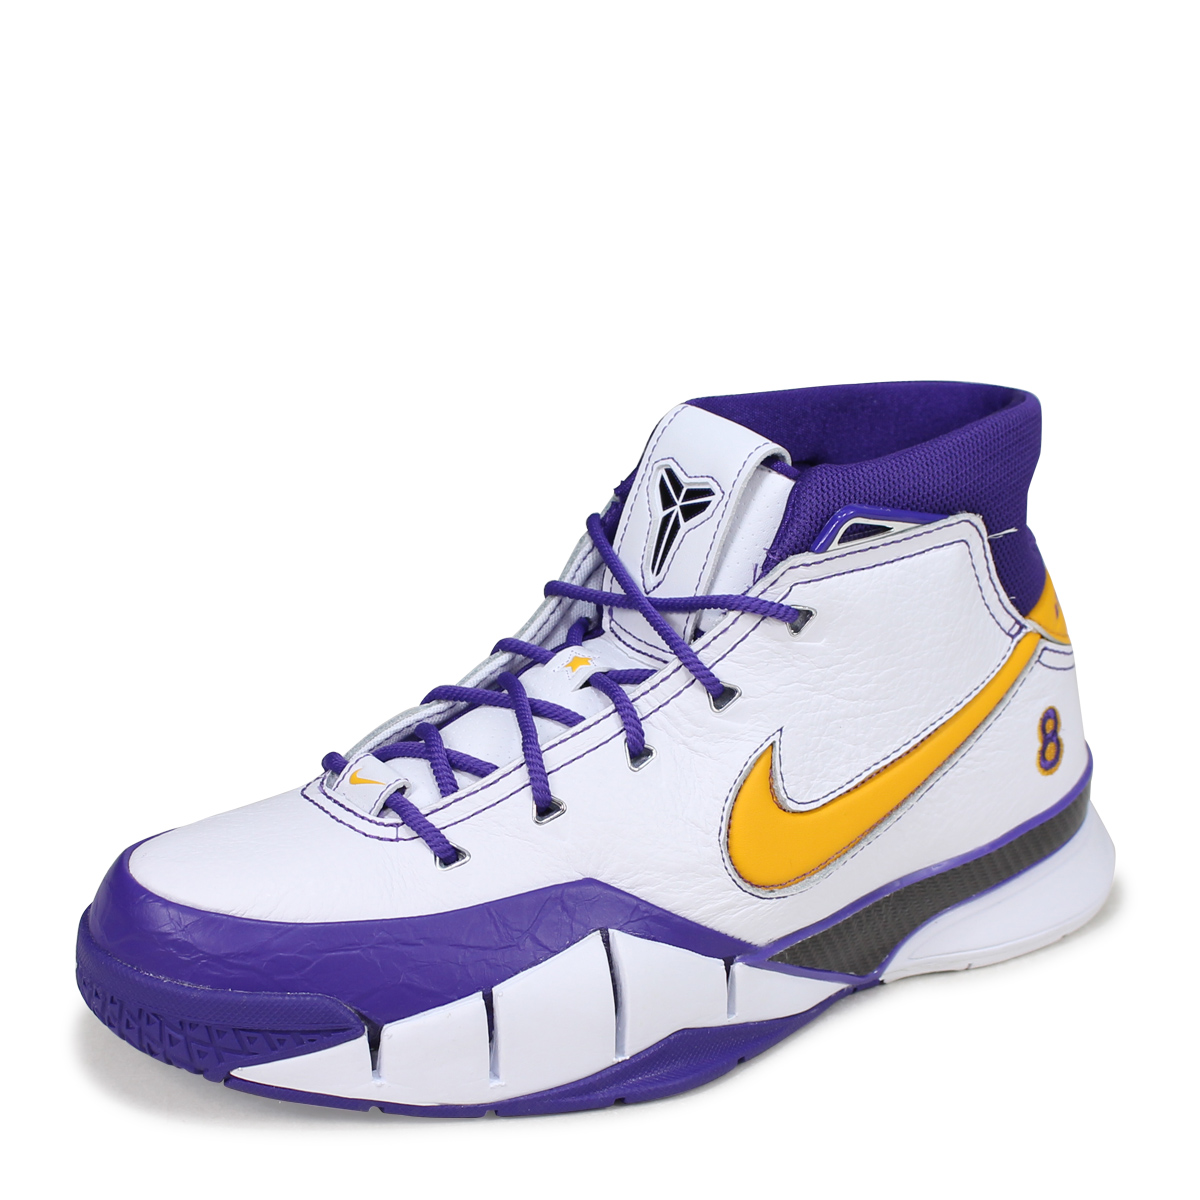 purchase cheap 79381 3ef3a ... switzerland nike zoom kobe 1 protro final seconds nike corby 1 sneakers  men aq2728 101 white